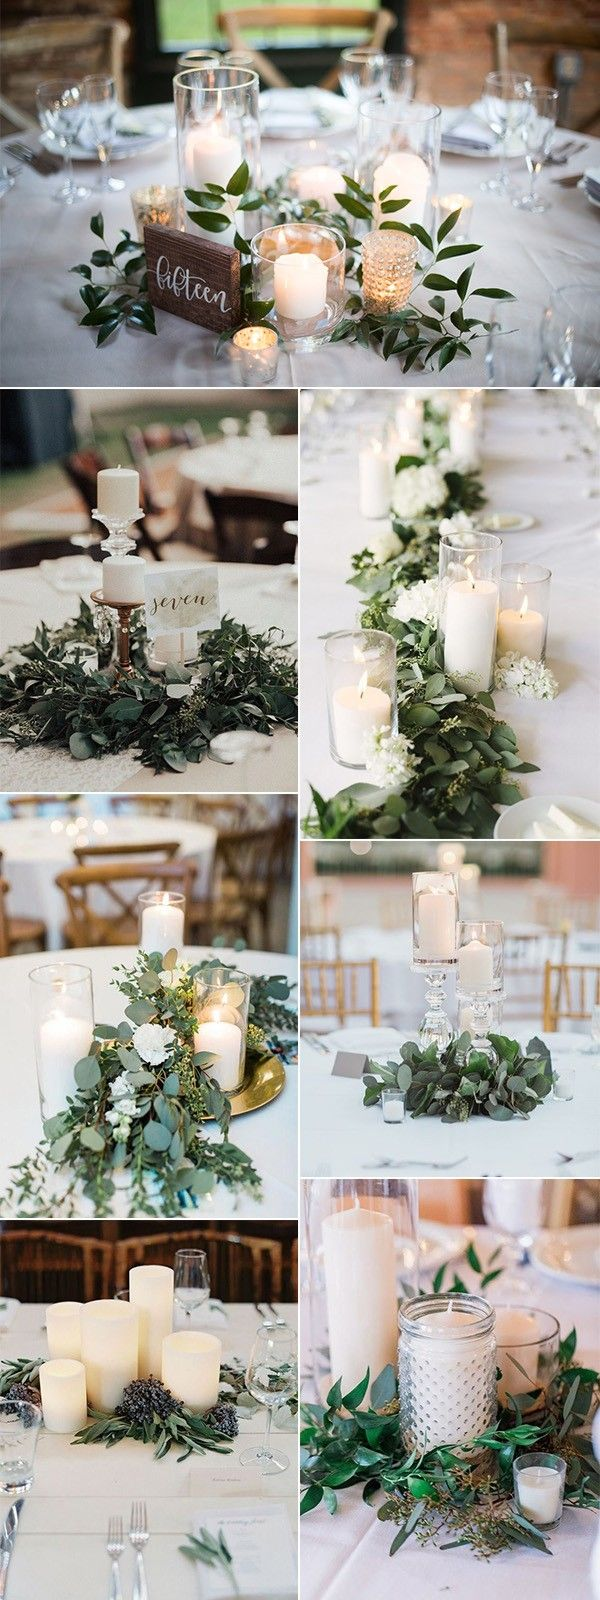 20 Funds Pleasant Easy Marriage ceremony Centerpiece Concepts with Candles